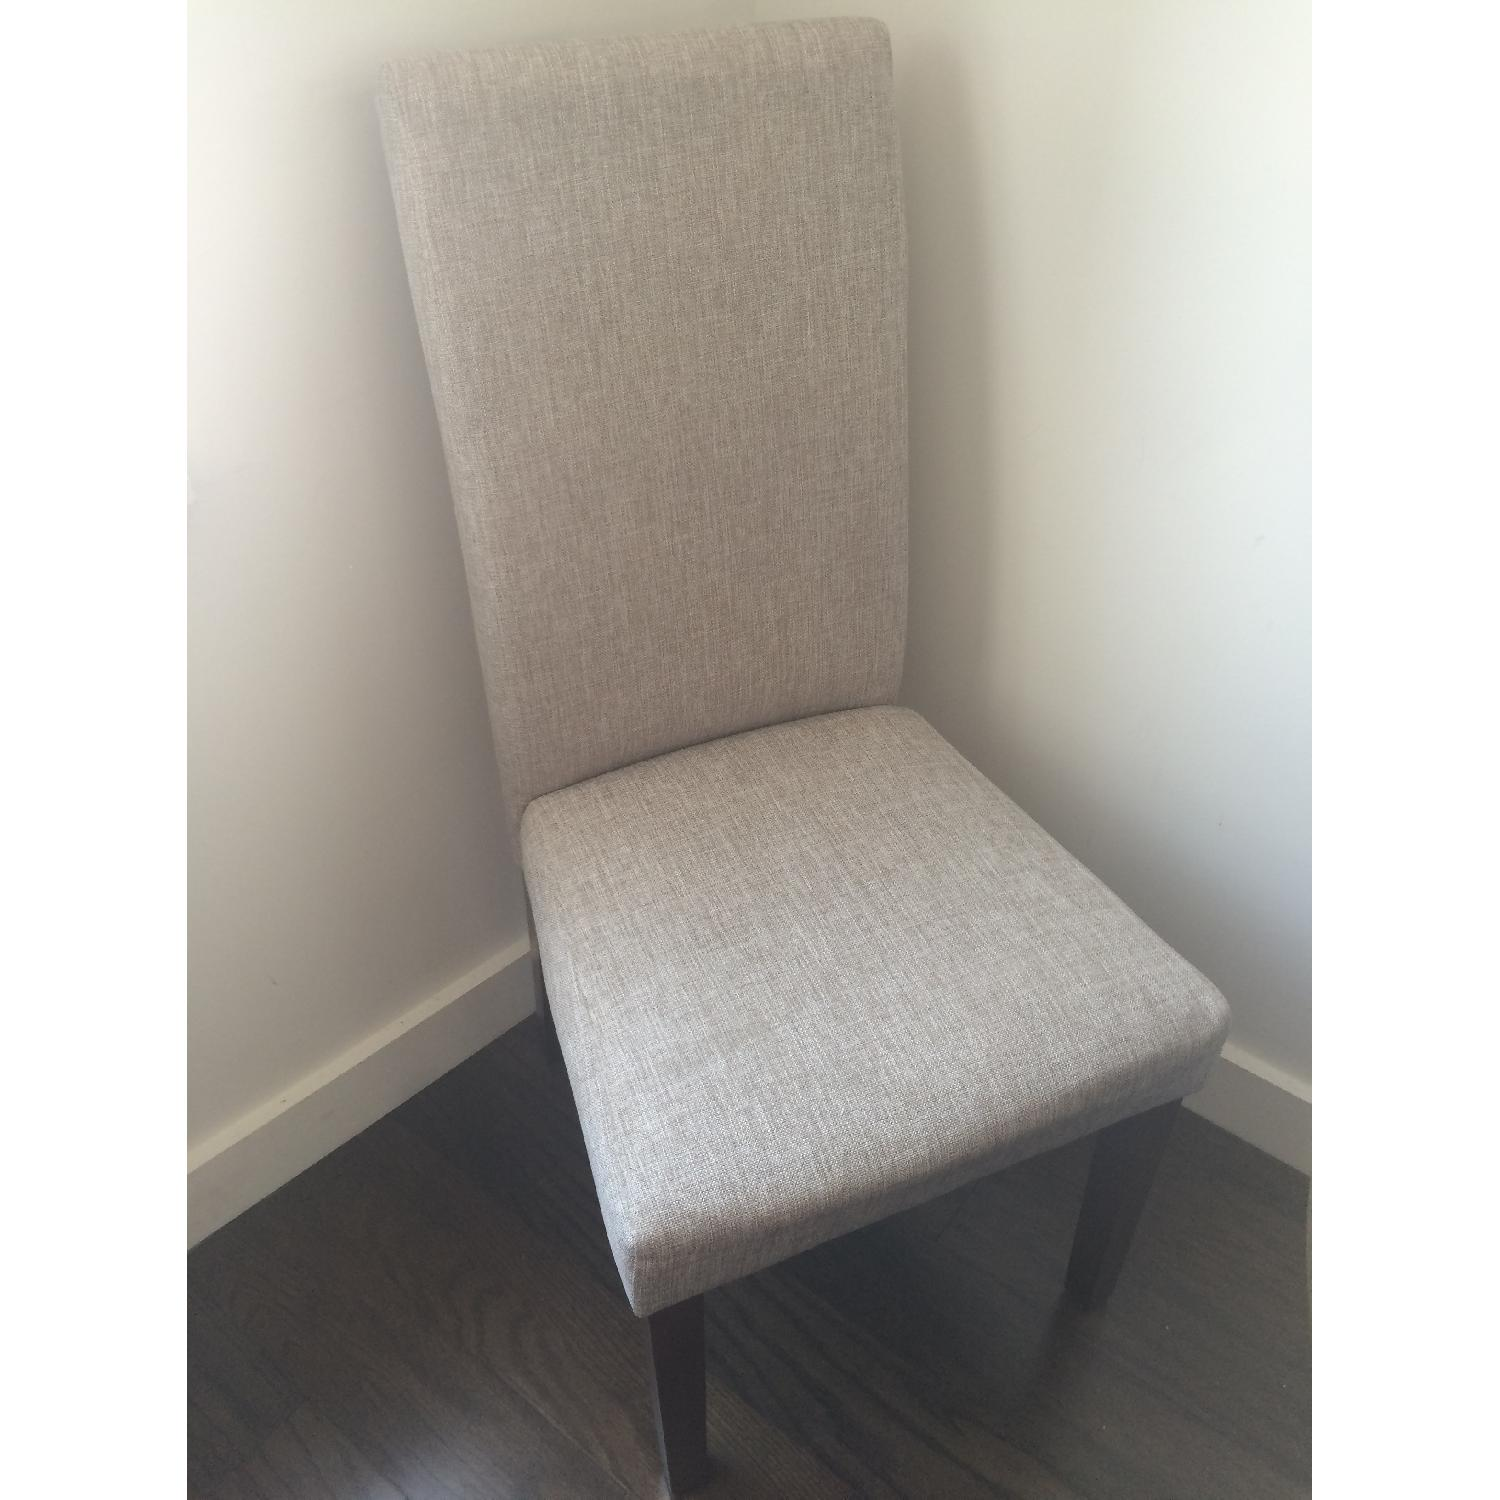 Monsoon Pacific Beige High-Backed Dining Chairs - image-4